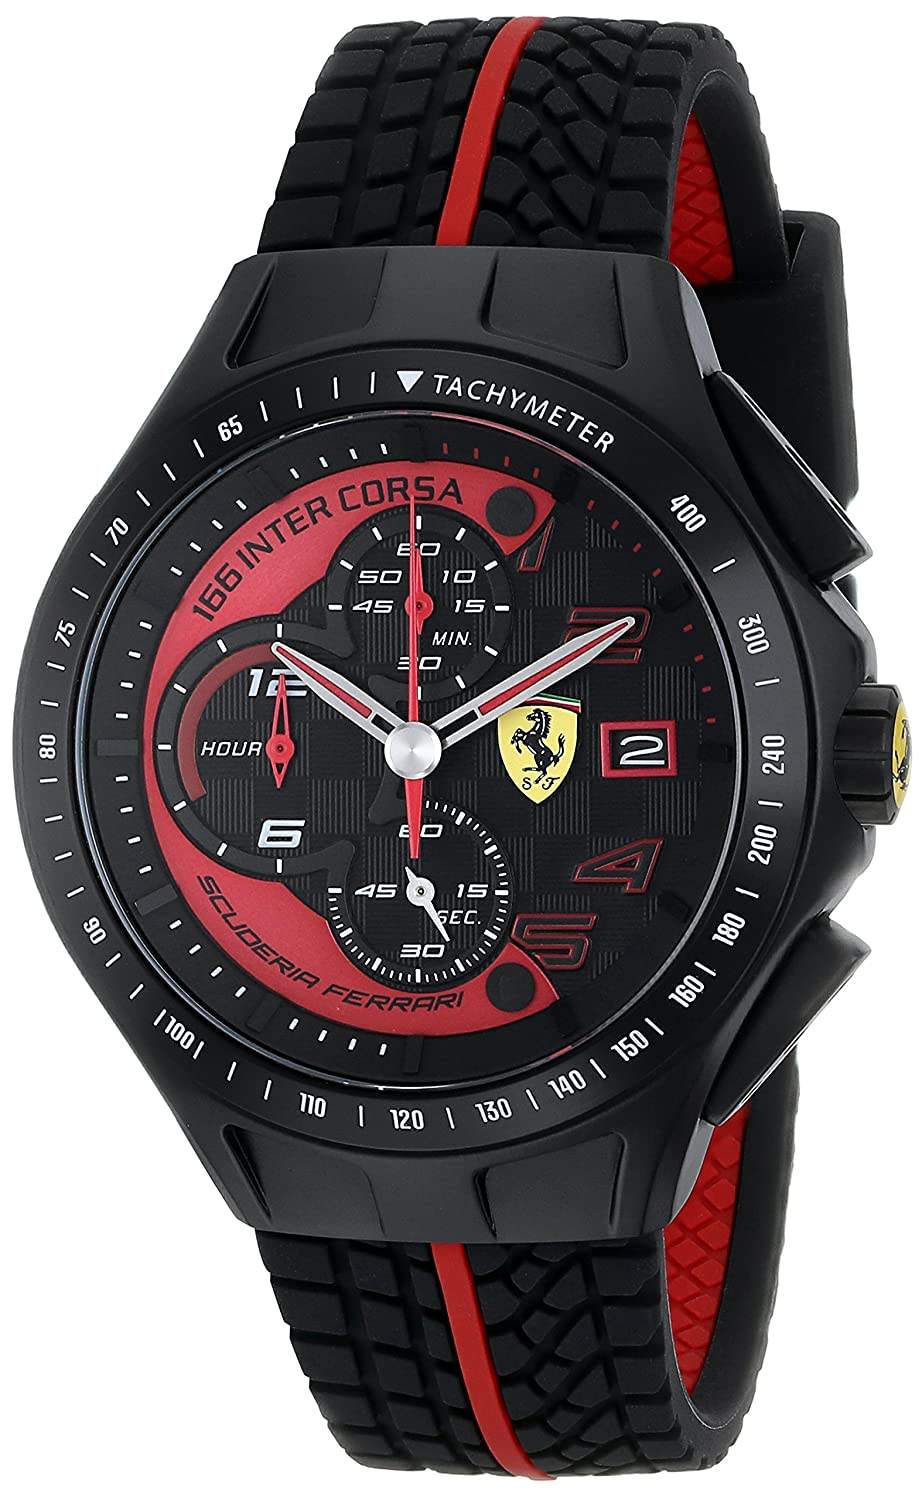 episode and watches monochrome formula hublot ferrari